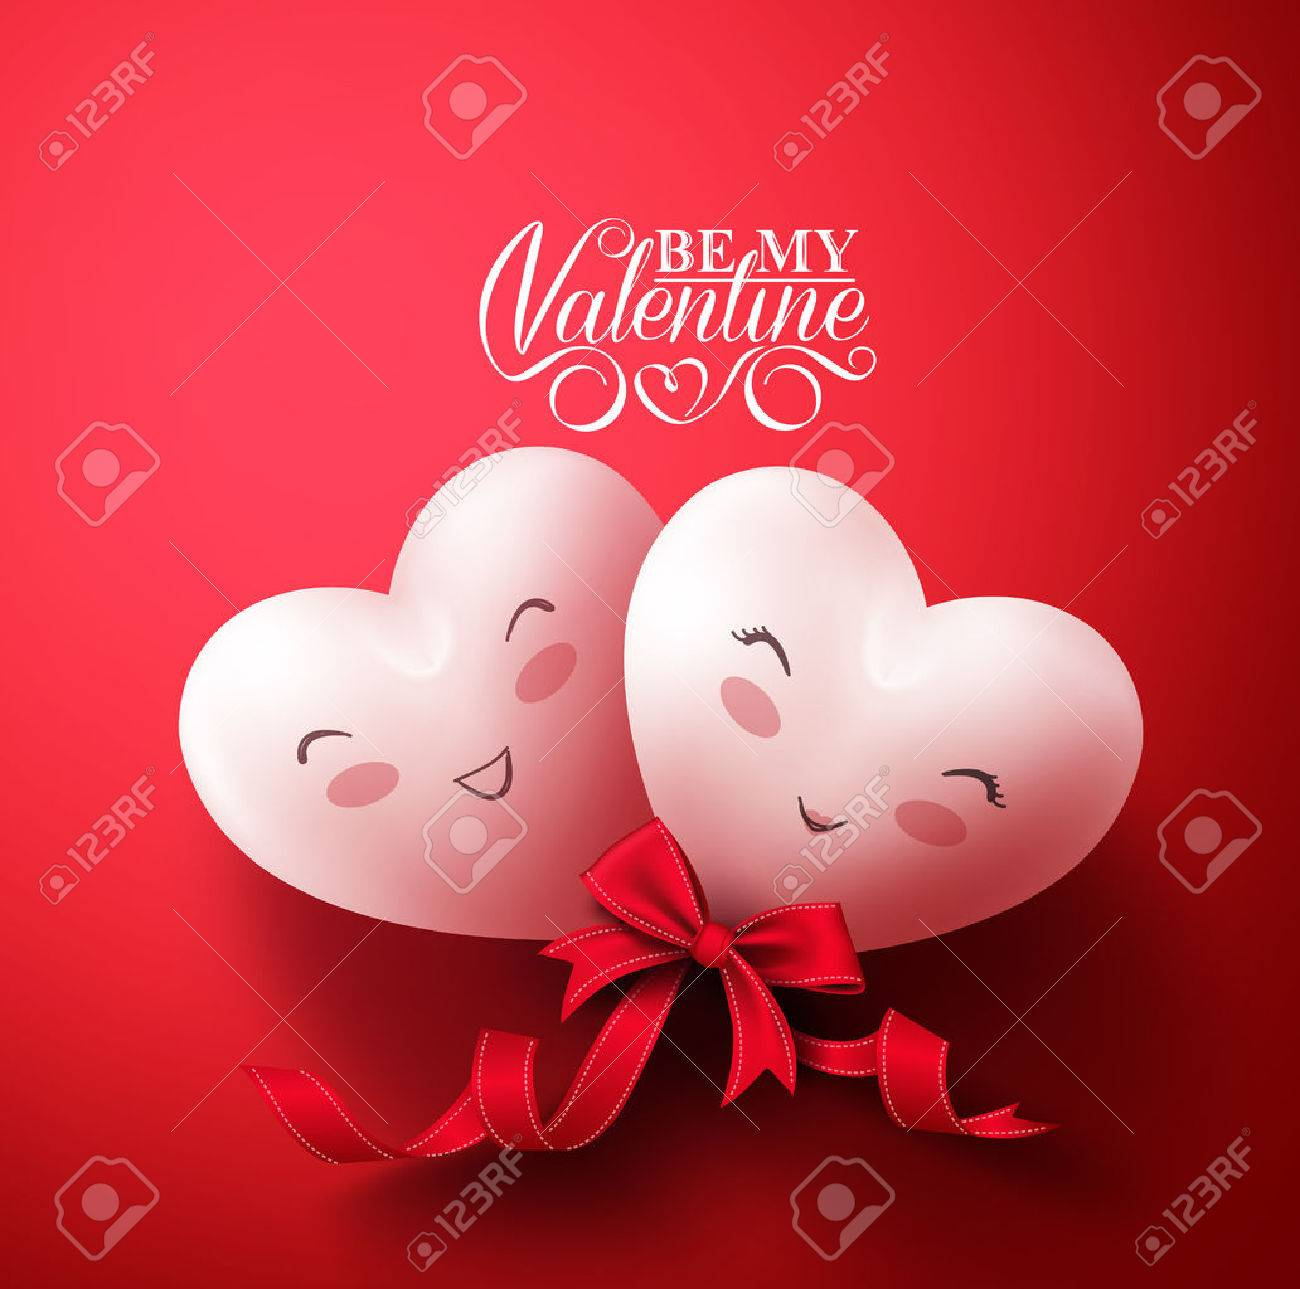 Sweet smiling hearts of happy lovers for happy valentines day sweet smiling hearts of happy lovers for happy valentines day greetings in red background with ribbon kristyandbryce Image collections